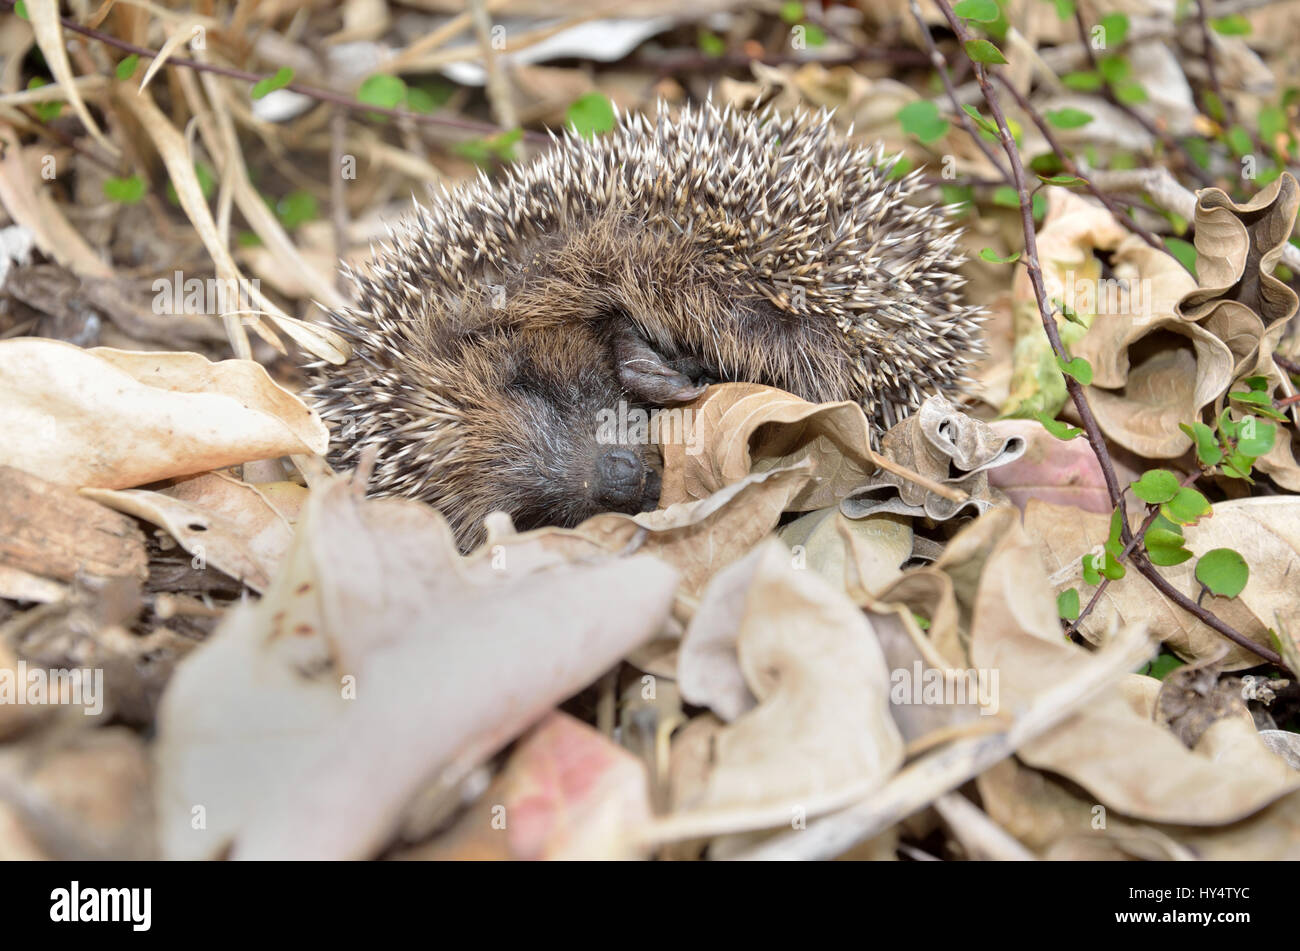 A young hedgehog plays possum after being disturbed in the garden - Stock Image